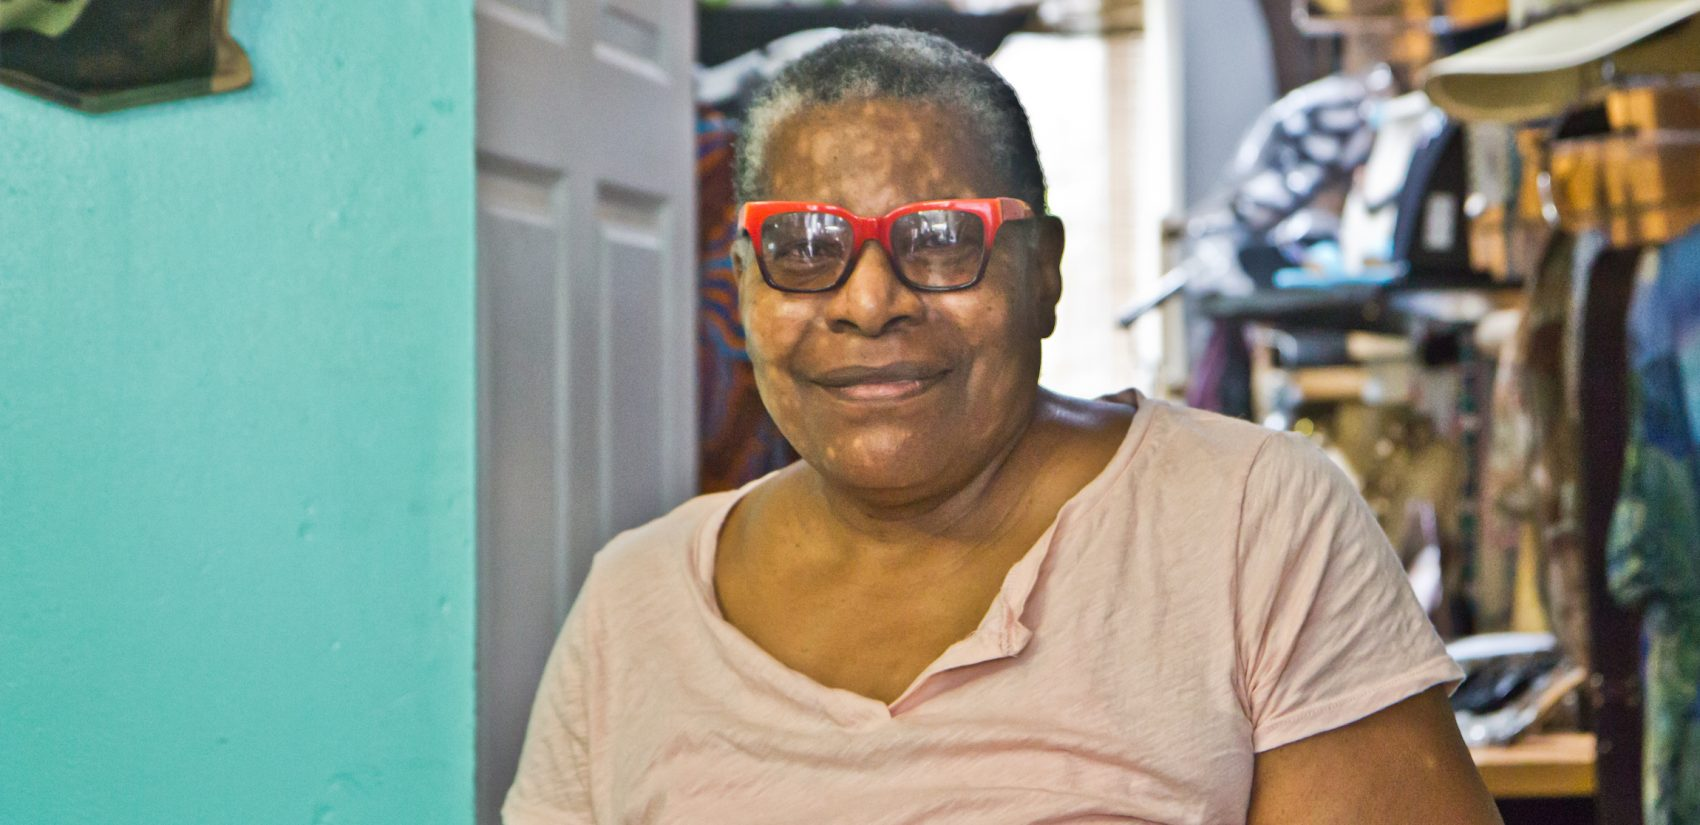 Phyllis Carter is the owner of a consignment shop on Lancaster Avenue. She'd like the former clinic building to become something totally unrelated to reproductive health. (Kimberly Paynter/WHYY)